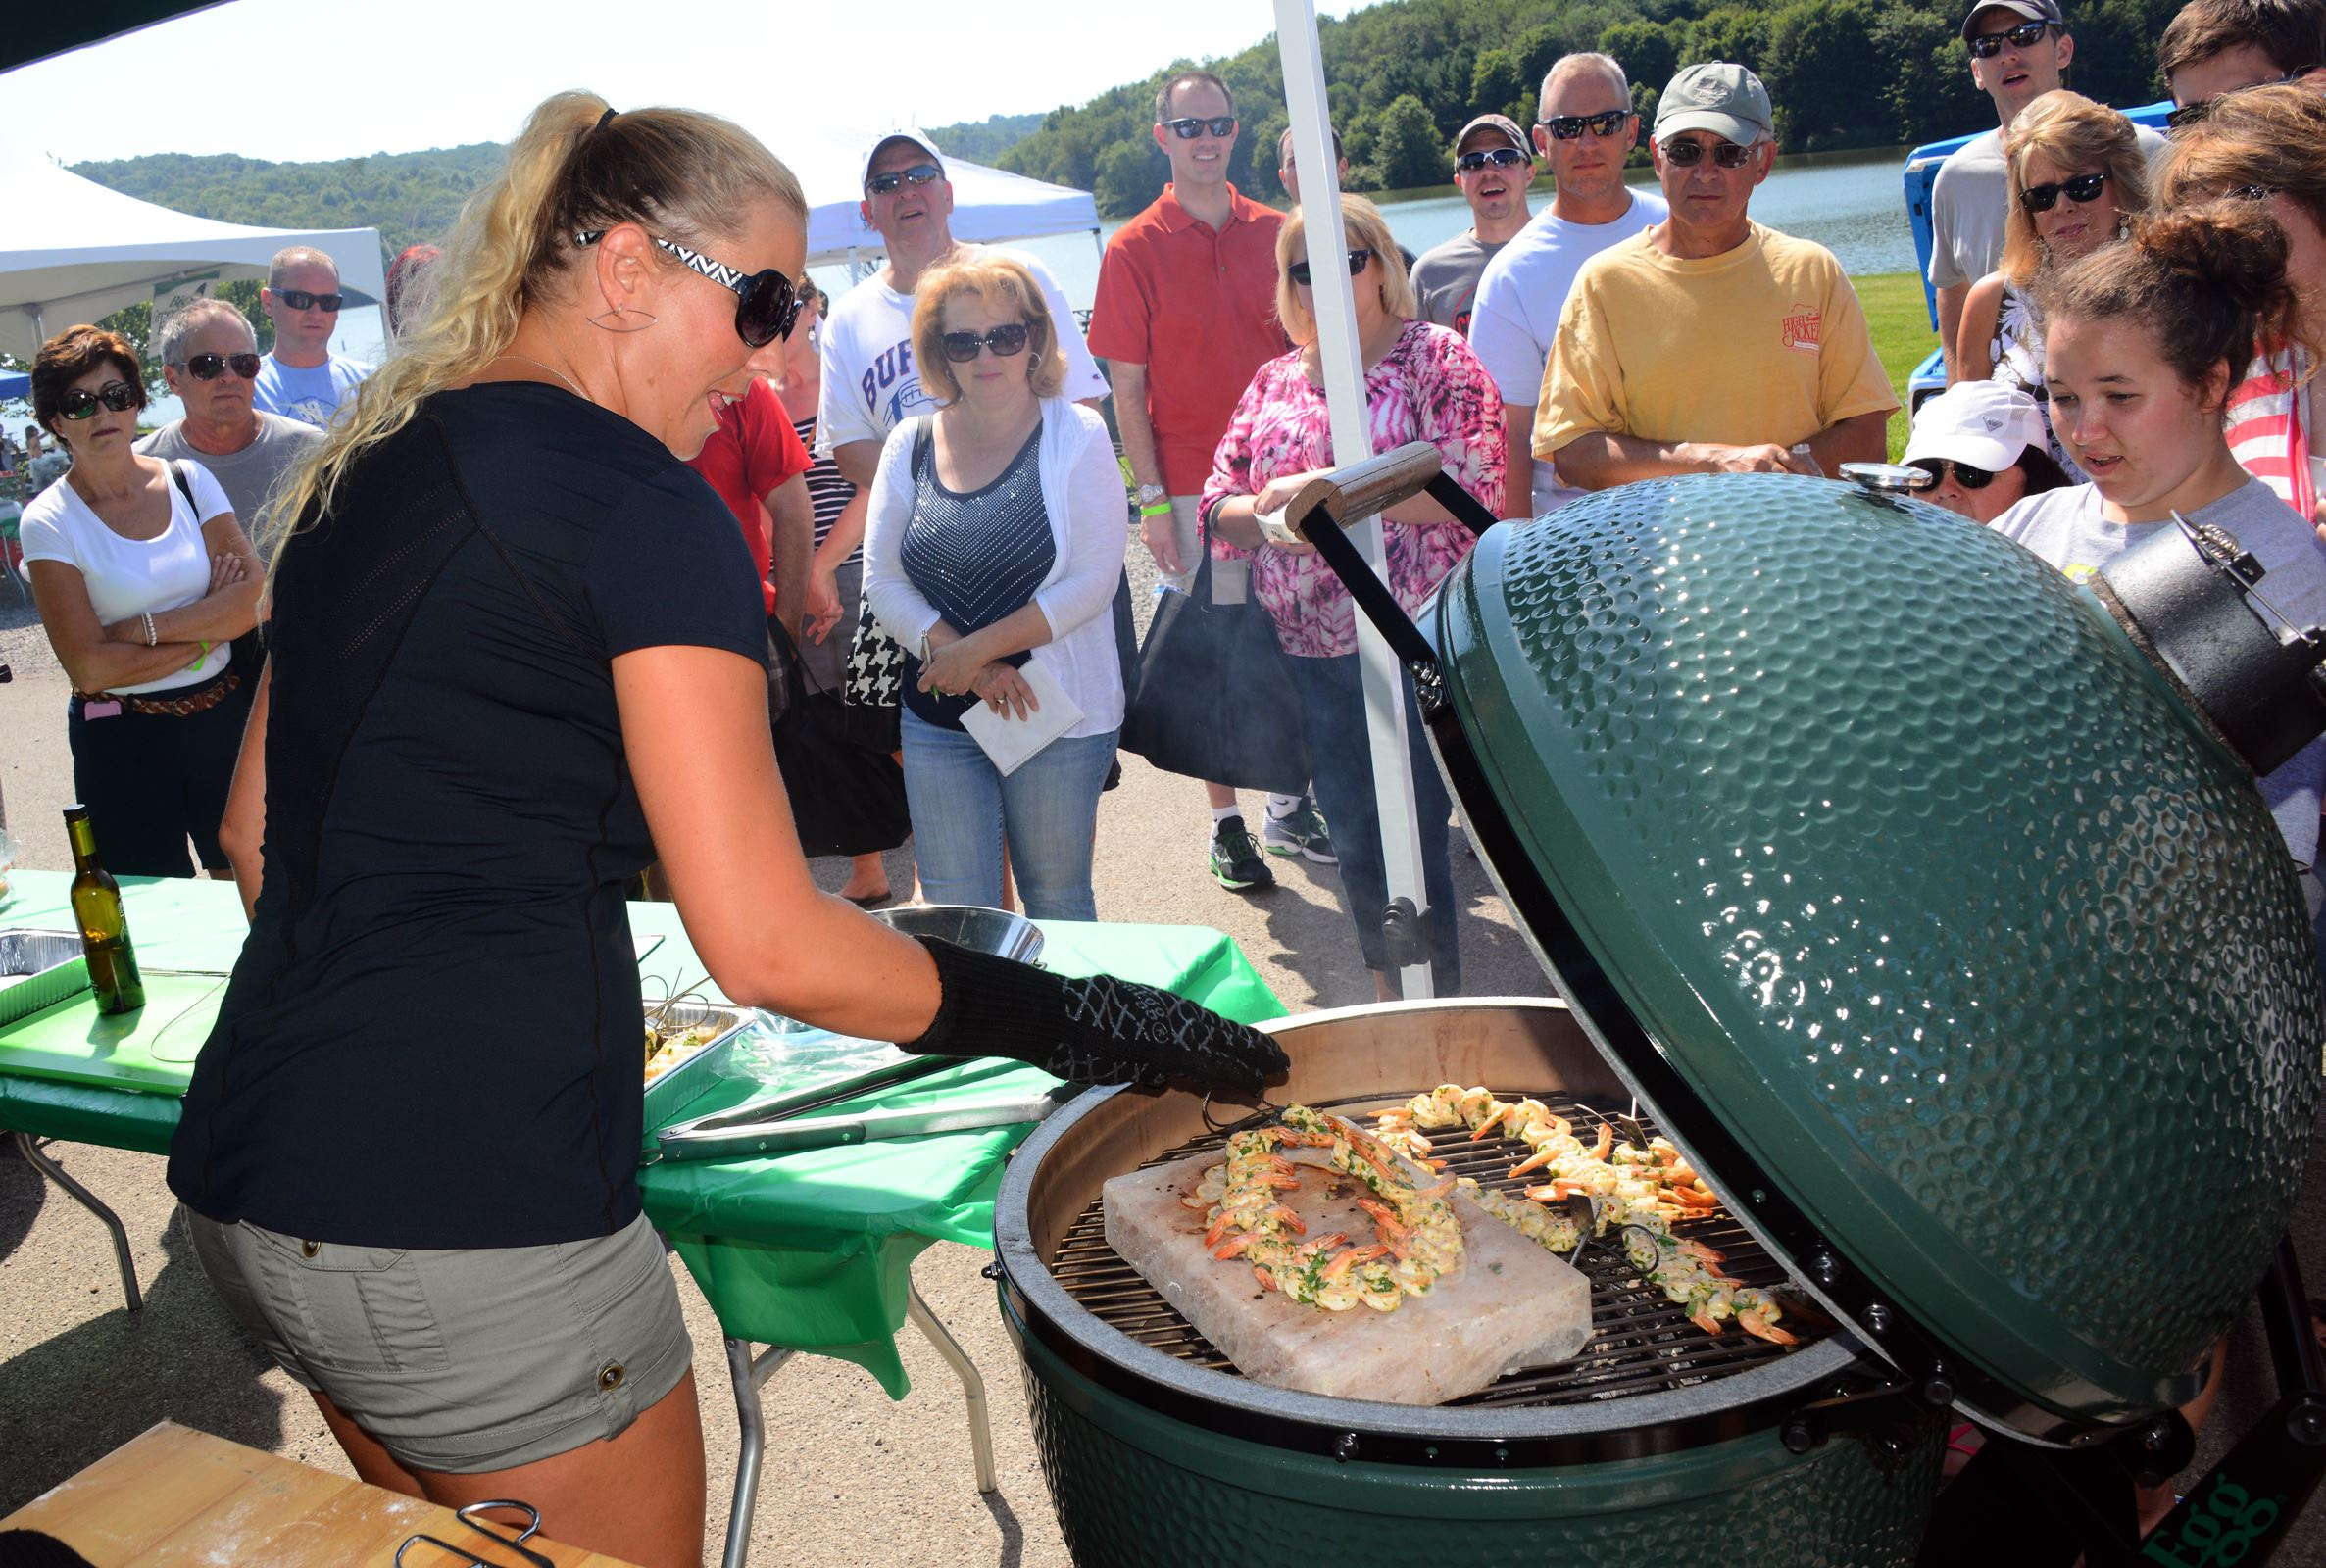 Big Green Egg, a Japanese kamado-style grill, fires up the faithful